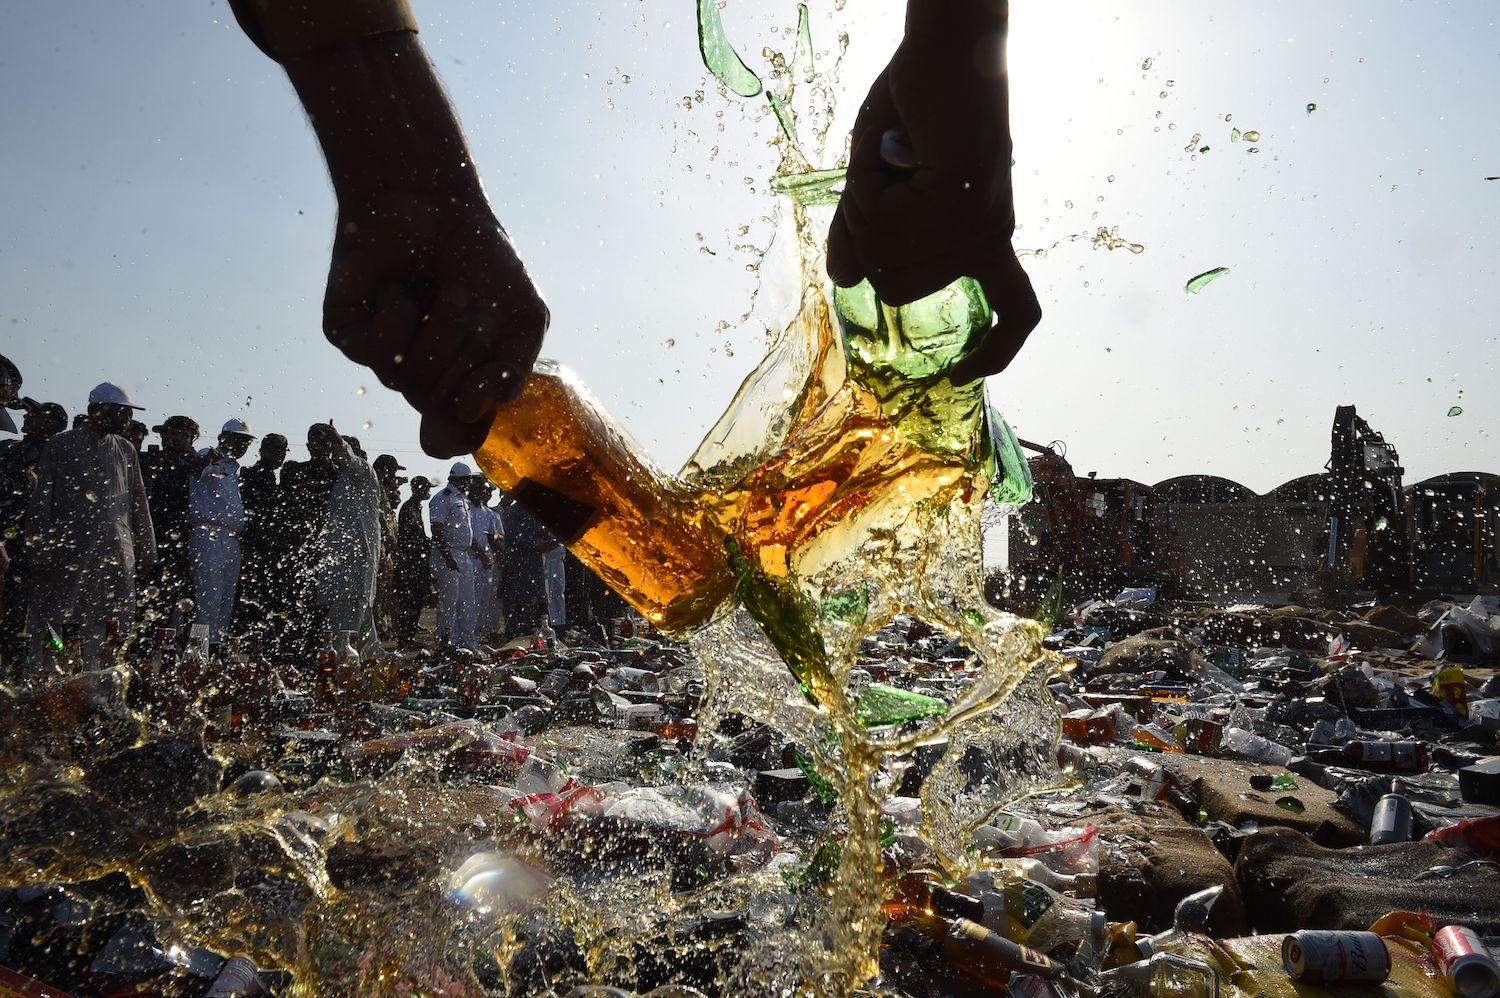 A Pakistani customs official smashes bottles of liquor in Karachi on Jan. 26, during a ceremony on the occasion of the International Customs Day.  Pakistani Customs Collectorate destroyed hundreds of illicit liquor bottles and drugs smuggled into the country. / AFP PHOTO / ASIF HASSAN        (Photo credit should read ASIF HASSAN/AFP/Getty Images)